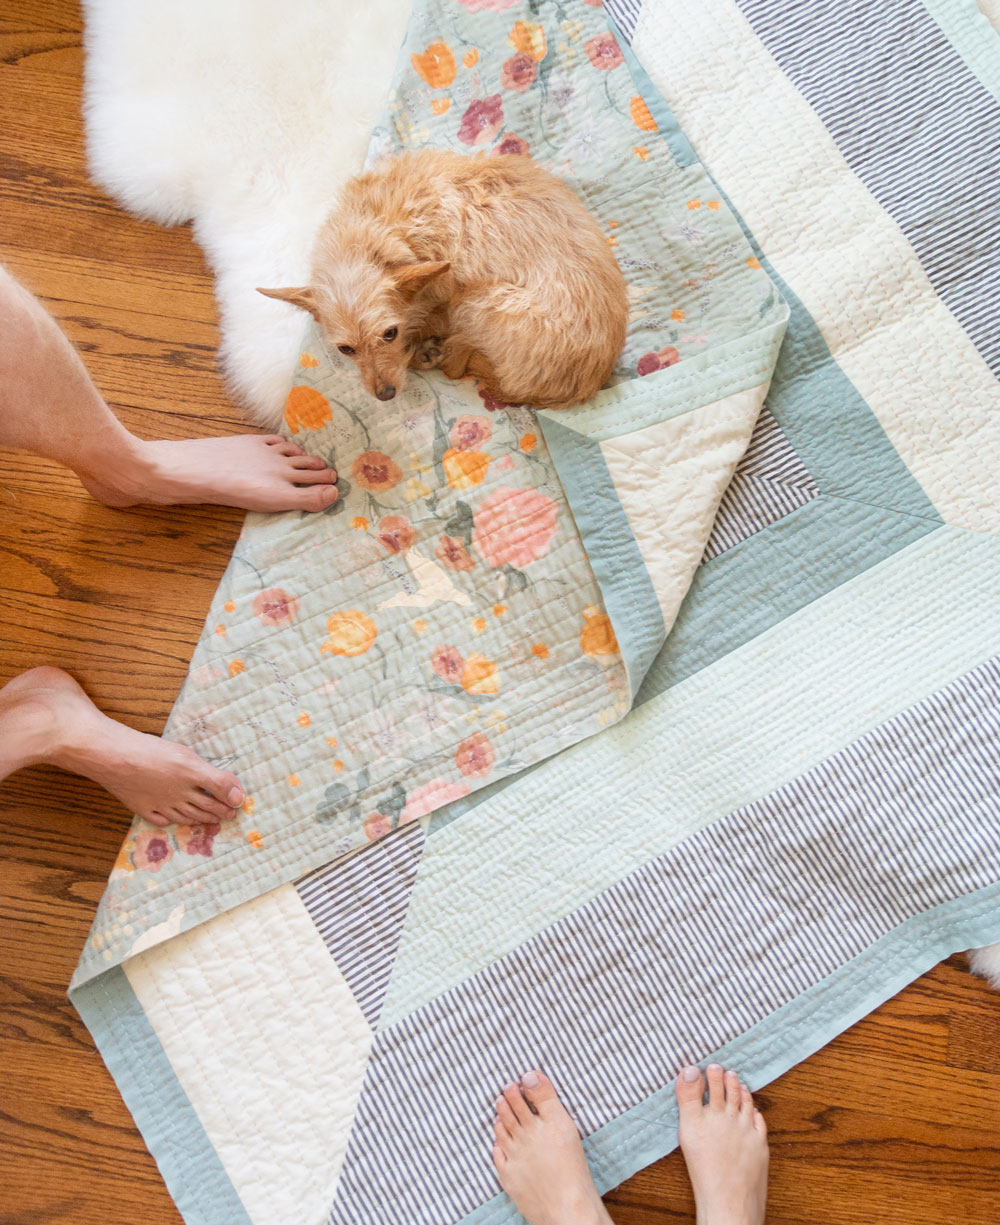 How to hand quilt in 3 easy steps! In this blog and video tutorial I'll list out all of the supplies you need and show you how simple hand quilting can be.